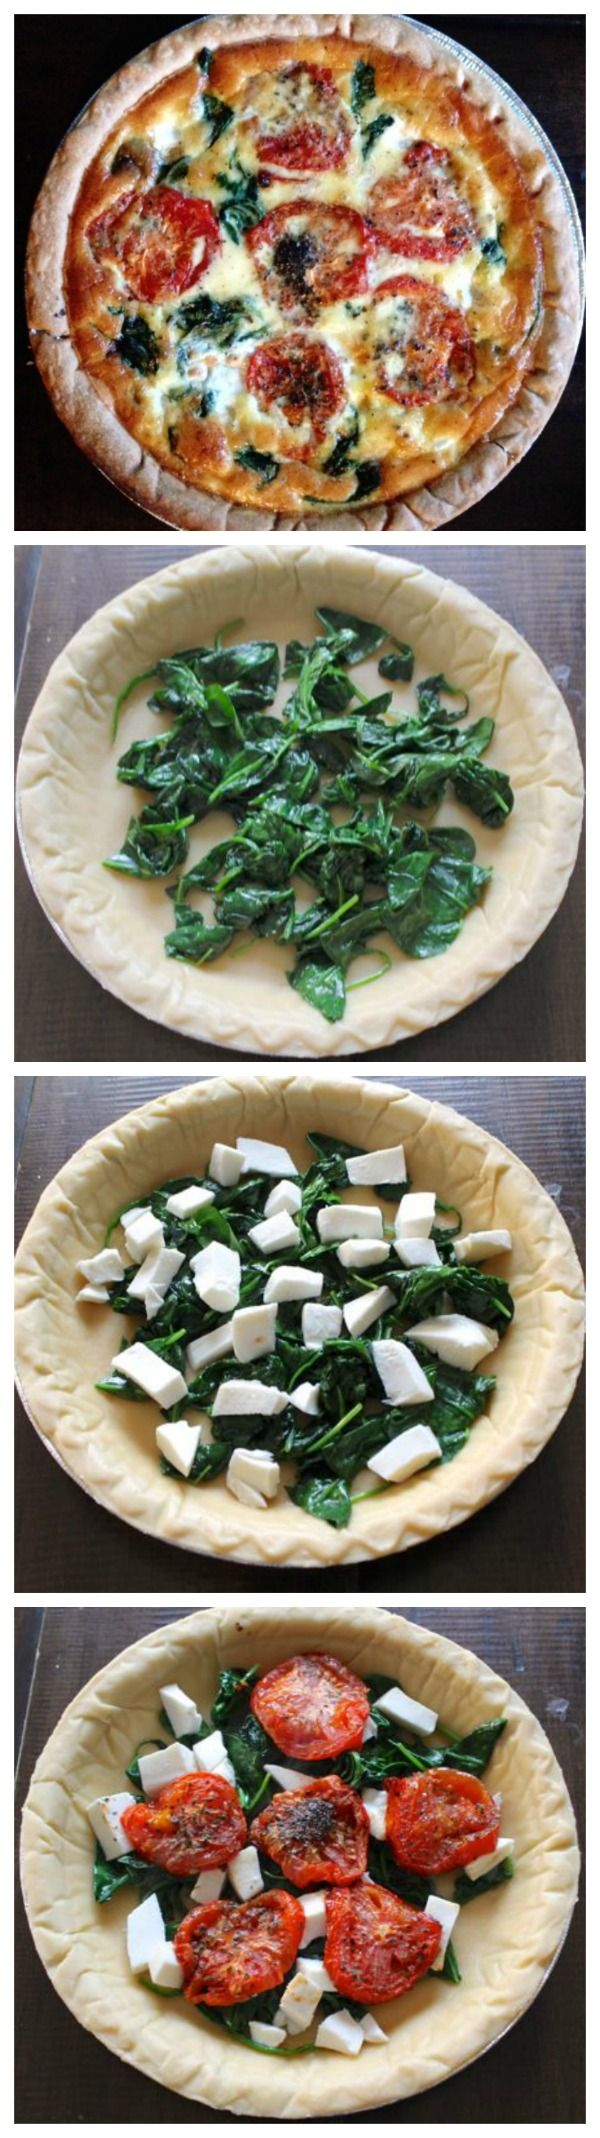 ~ Roasted Tomato, Spinach, and Mozzarella Quiche ~